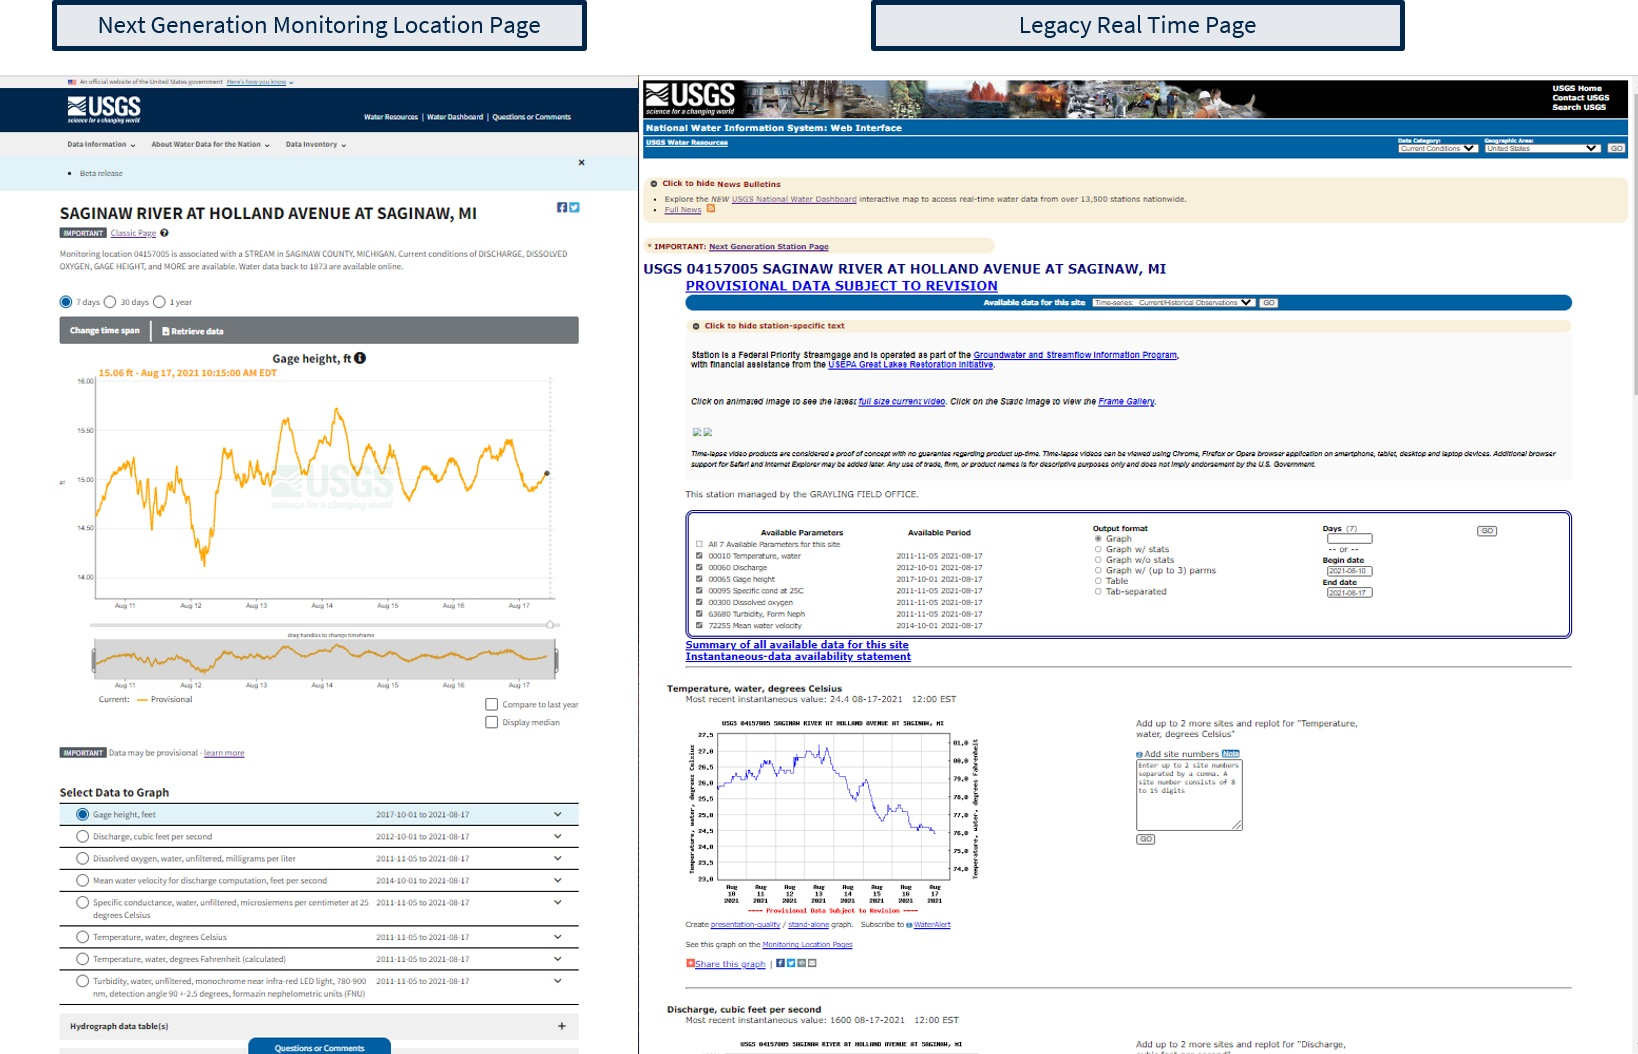 Side by side comparison of screenshots for next generation monitoring location page and legacy real time page for the same monitoring location 04157005, which is associated with a STREAM in SAGINAW COUNTY, MICHIGAN.